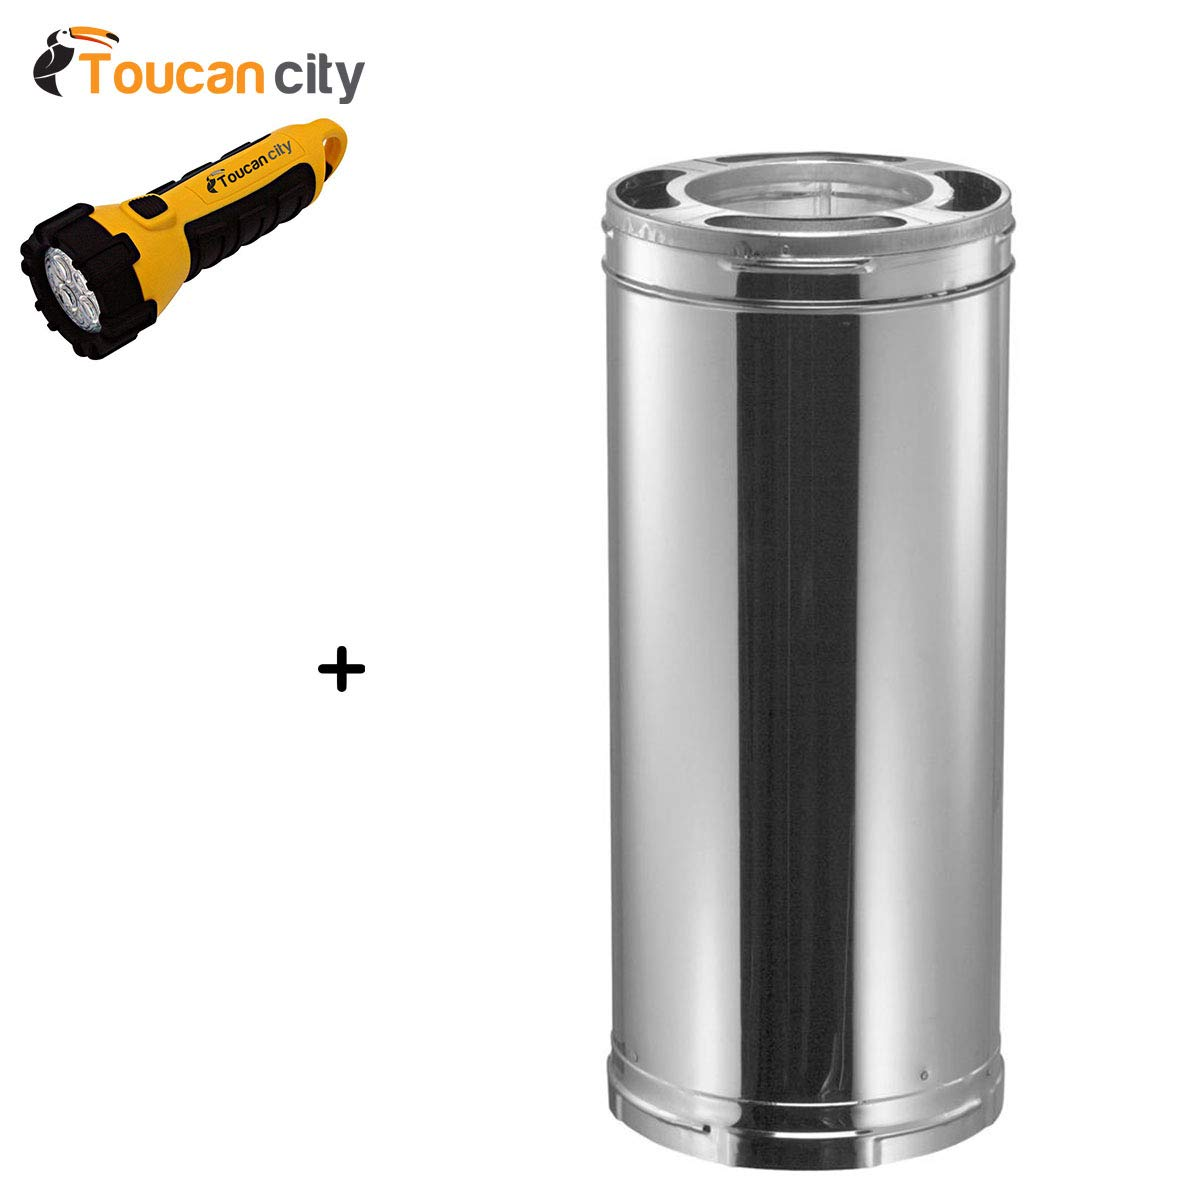 Toucan City LED Flashlight and DuraVent DuraPlus 6 in. x 12 in. Triple-Wall Chimney Stove Pipe 6DP-12